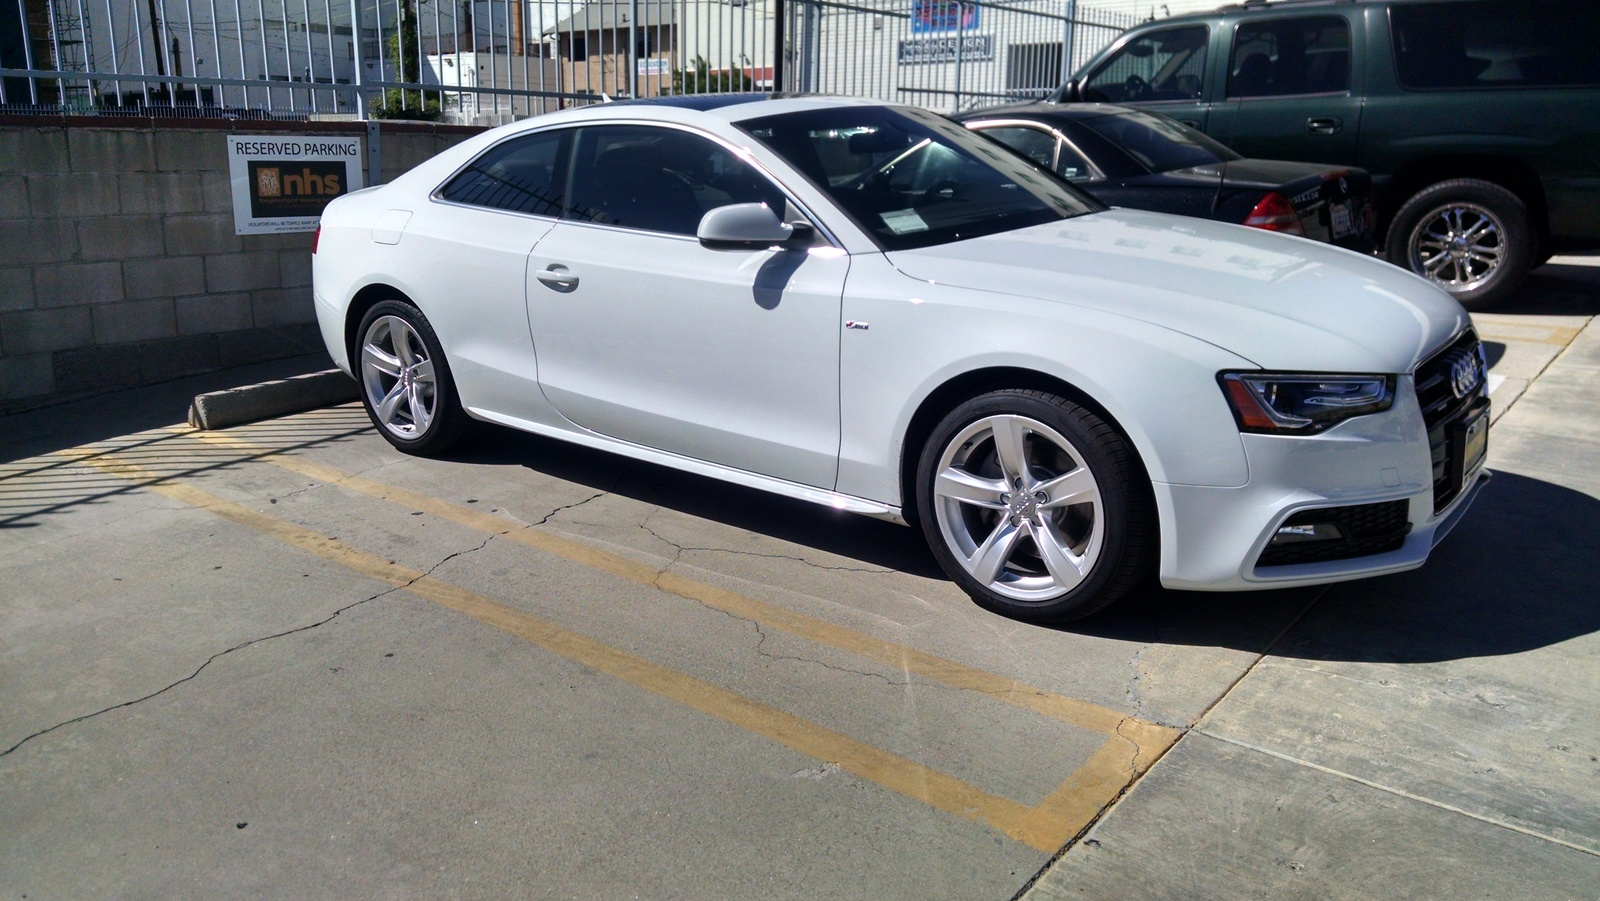 Used audi cars in dallas tx 15